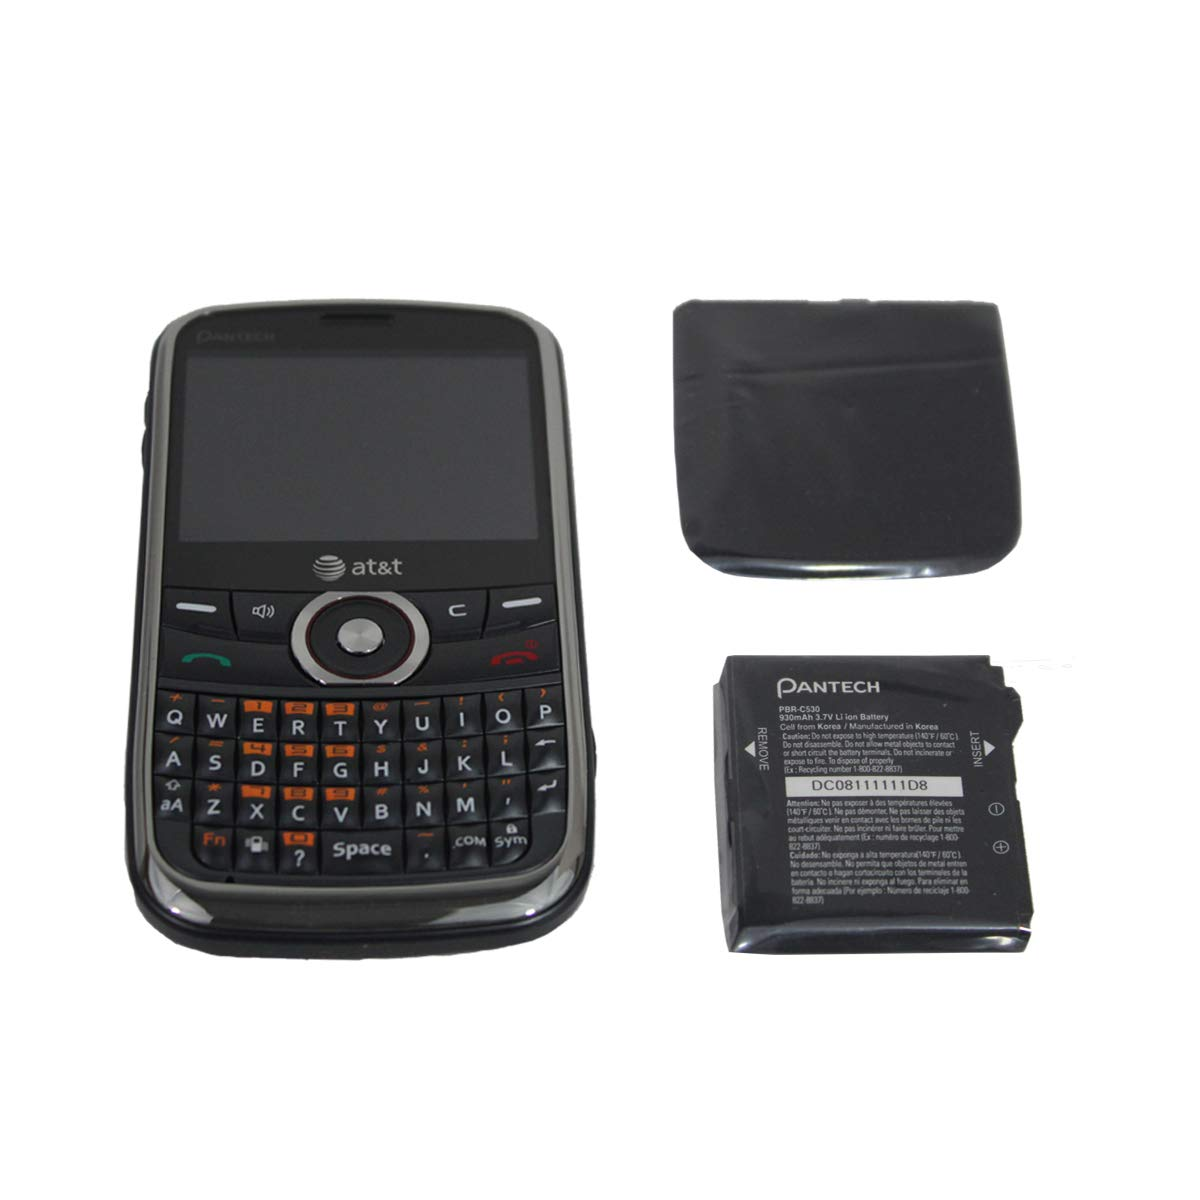 bf7cef2b3cc Amazon.com: Pantech P7040 Link Unlocked Phone with QWERTY Keyboard, 1.3 MP  Camera and GPS-No Warranty-Wine/Black: Cell Phones & Accessories